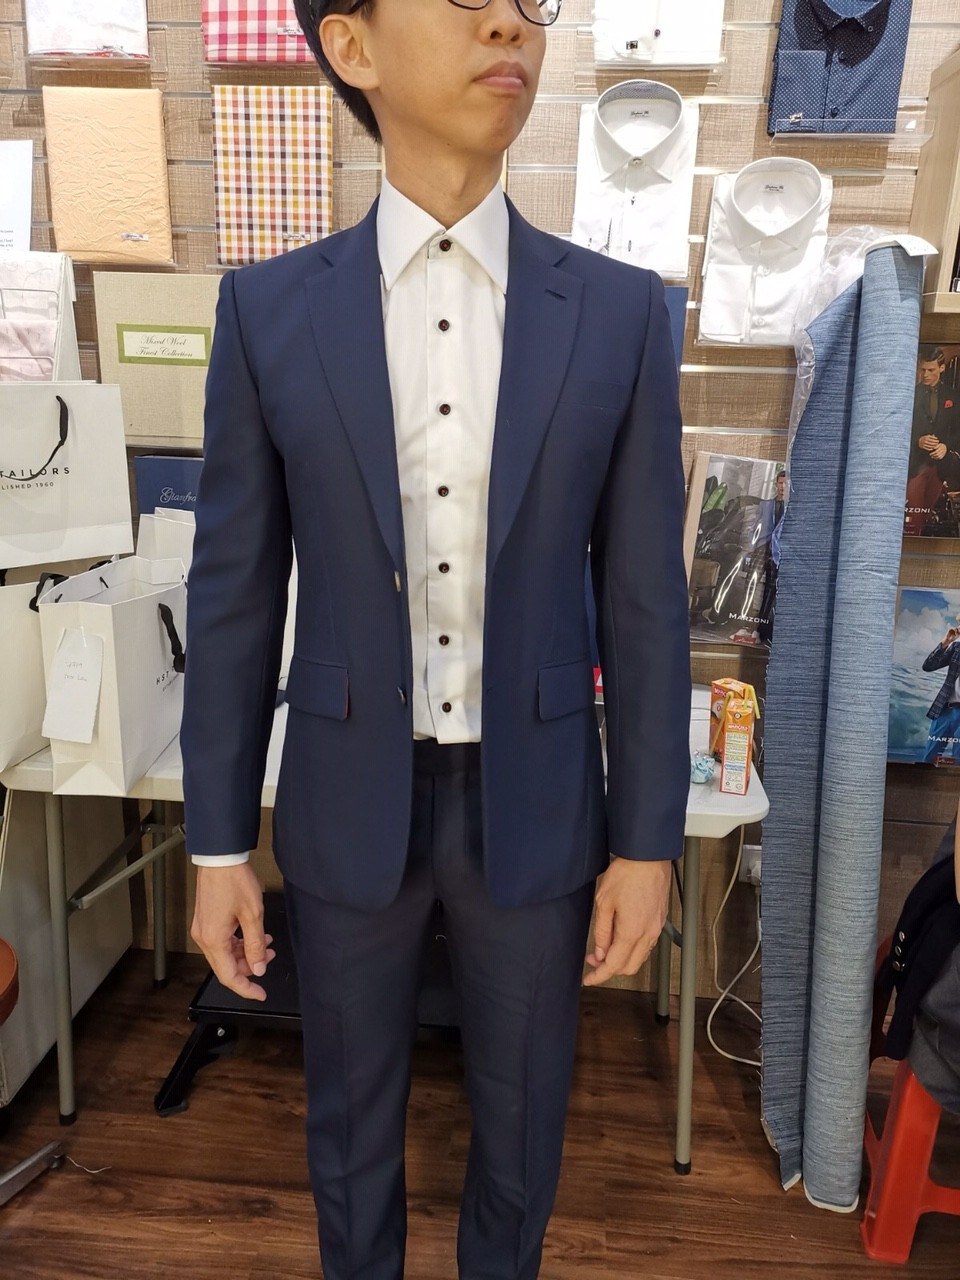 HST Tailor groom suit for wedding